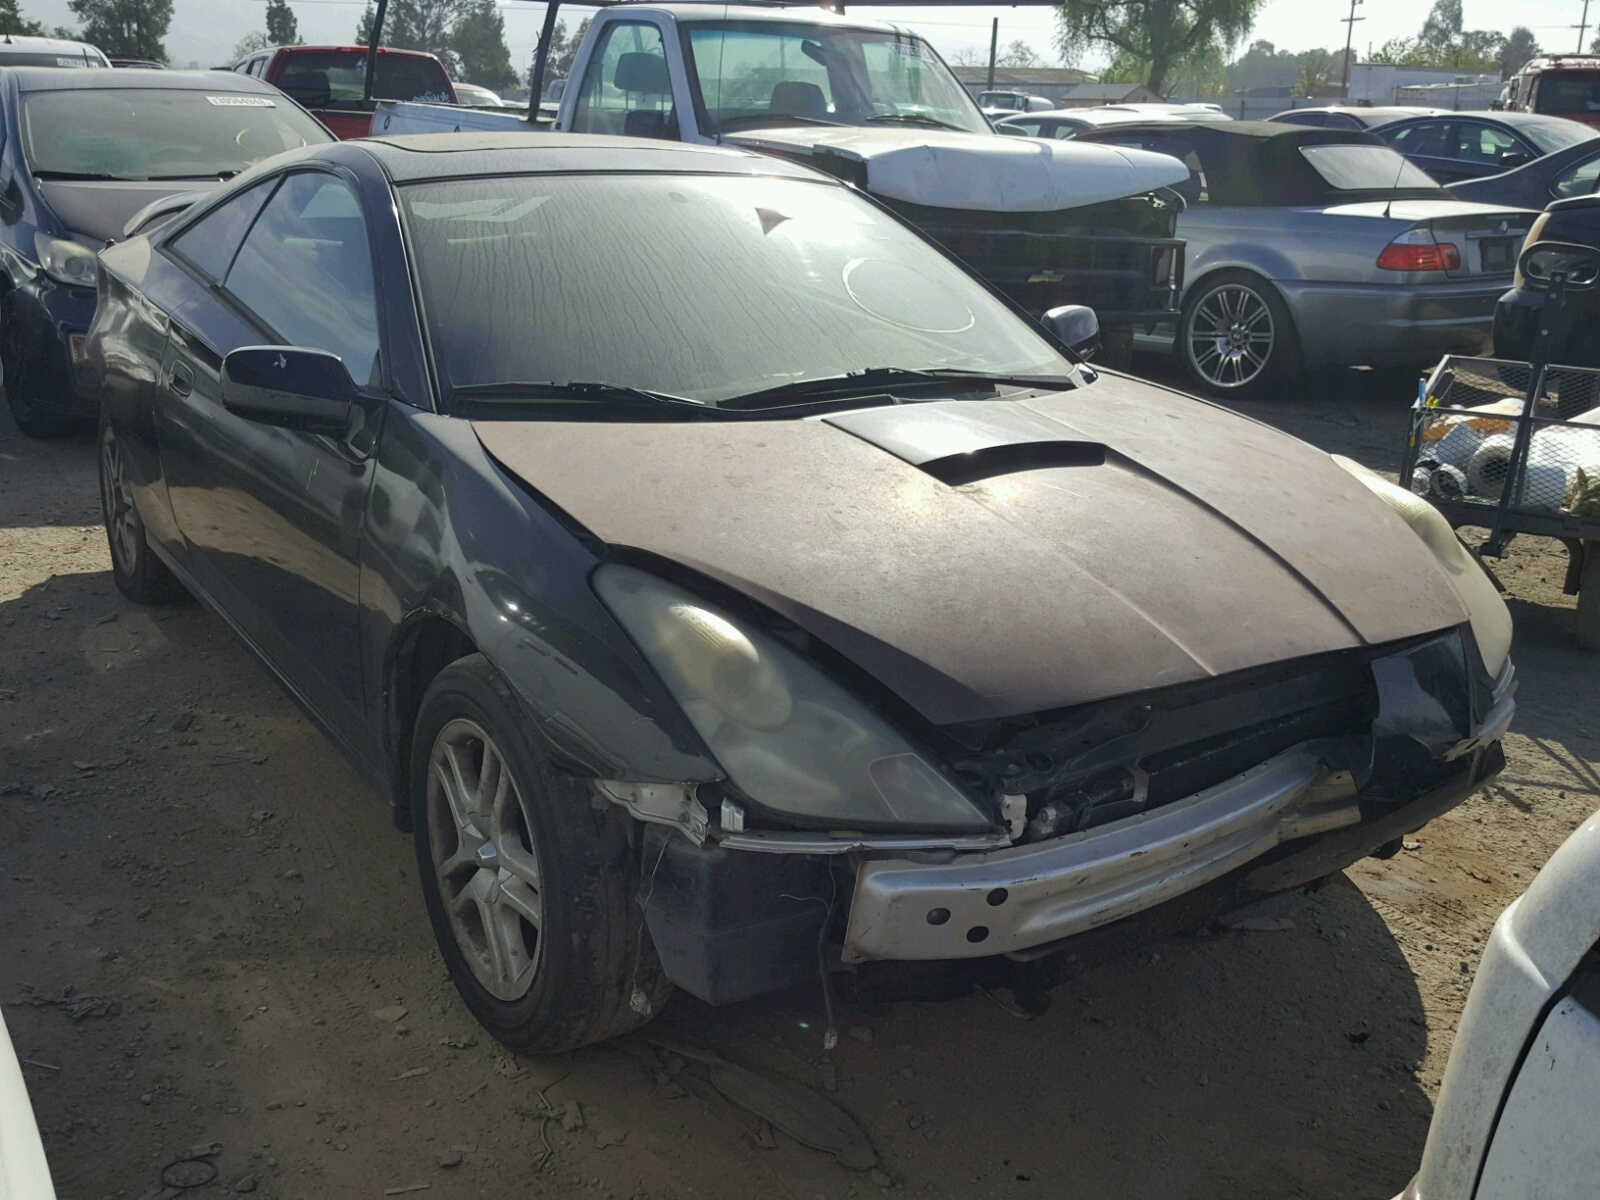 hight resolution of auto auction ended on vin jtddr32t6y0018563 2000 toyota celica gt in ca san jose